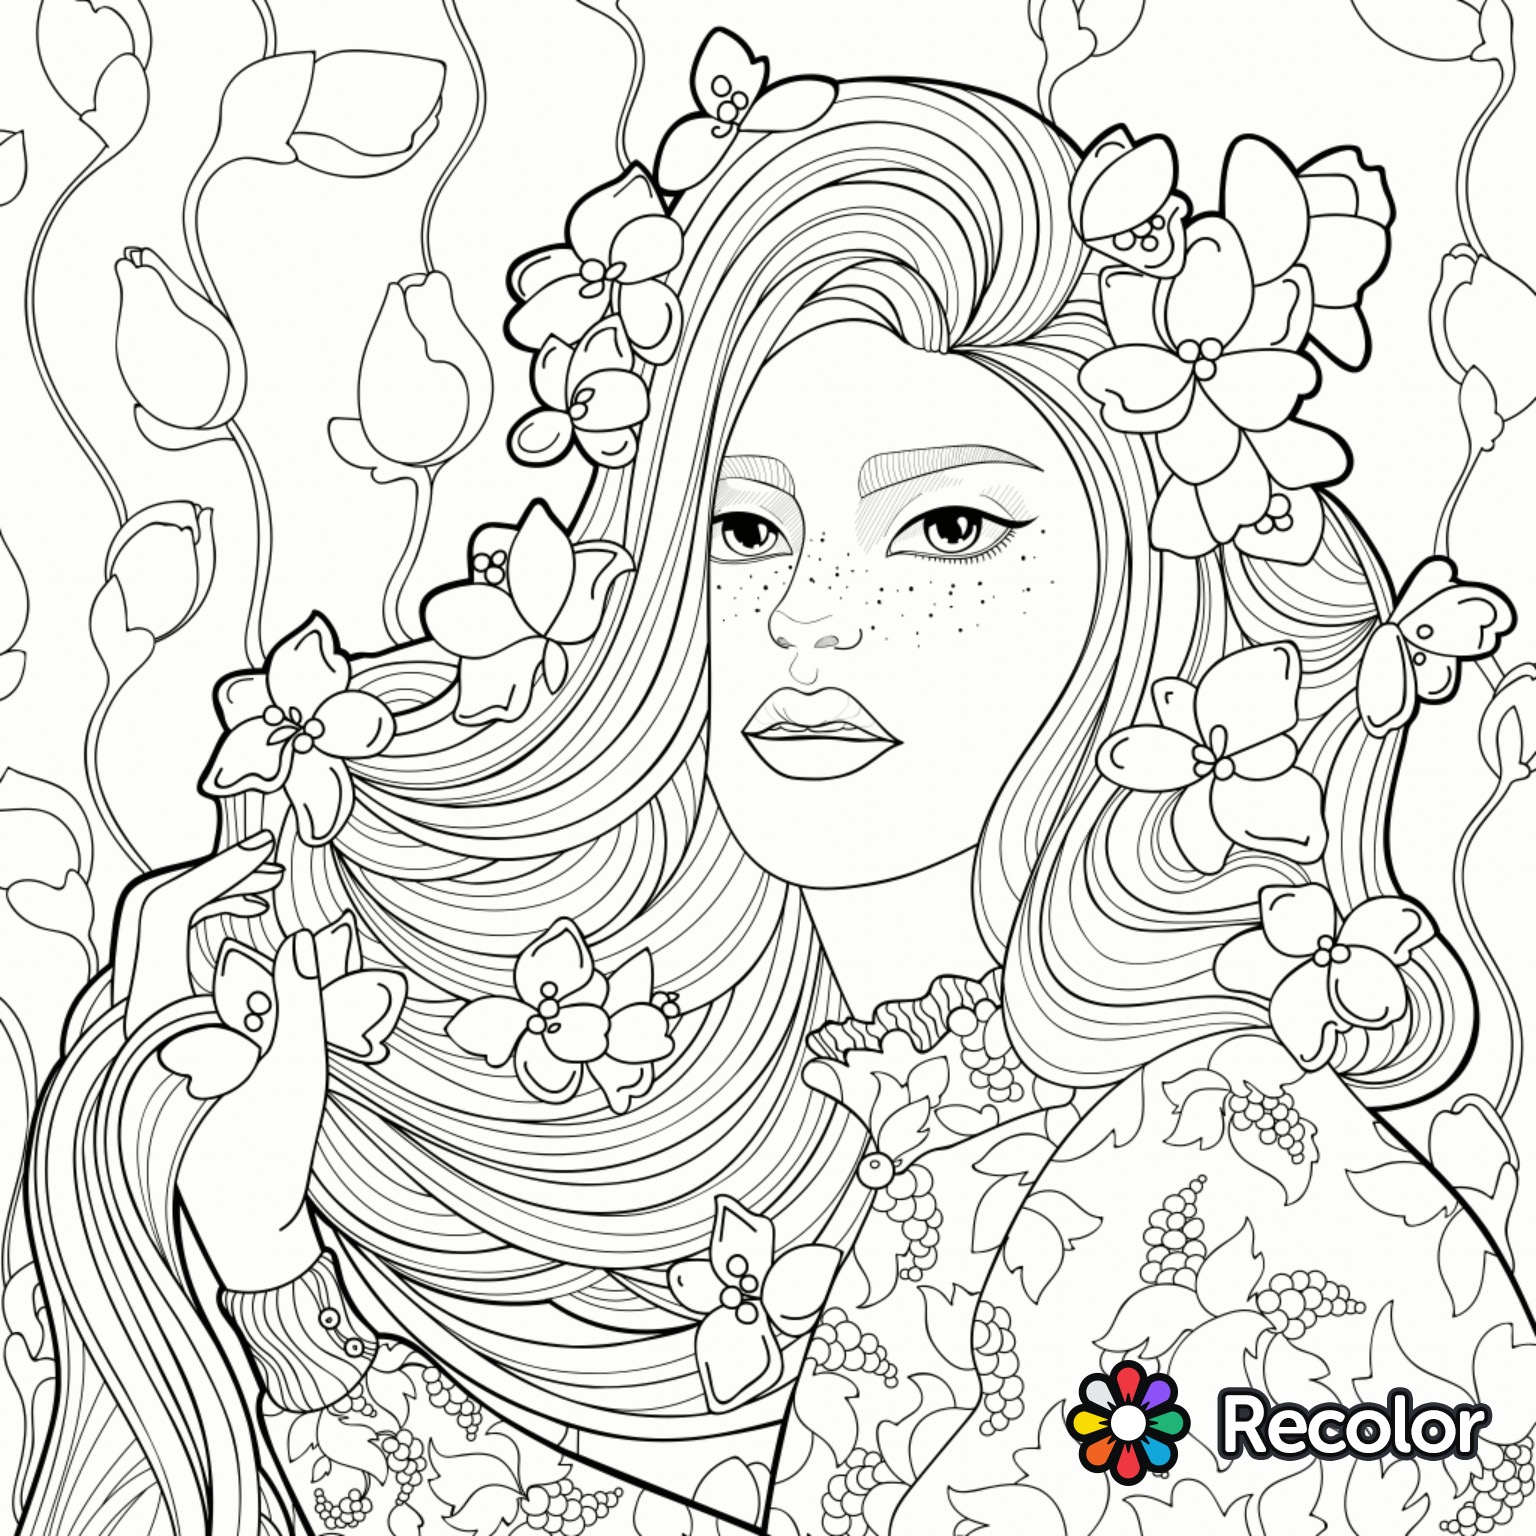 1536x1536 Girl With Flowers In Her Hair Coloring Page Beautiful Women Hair